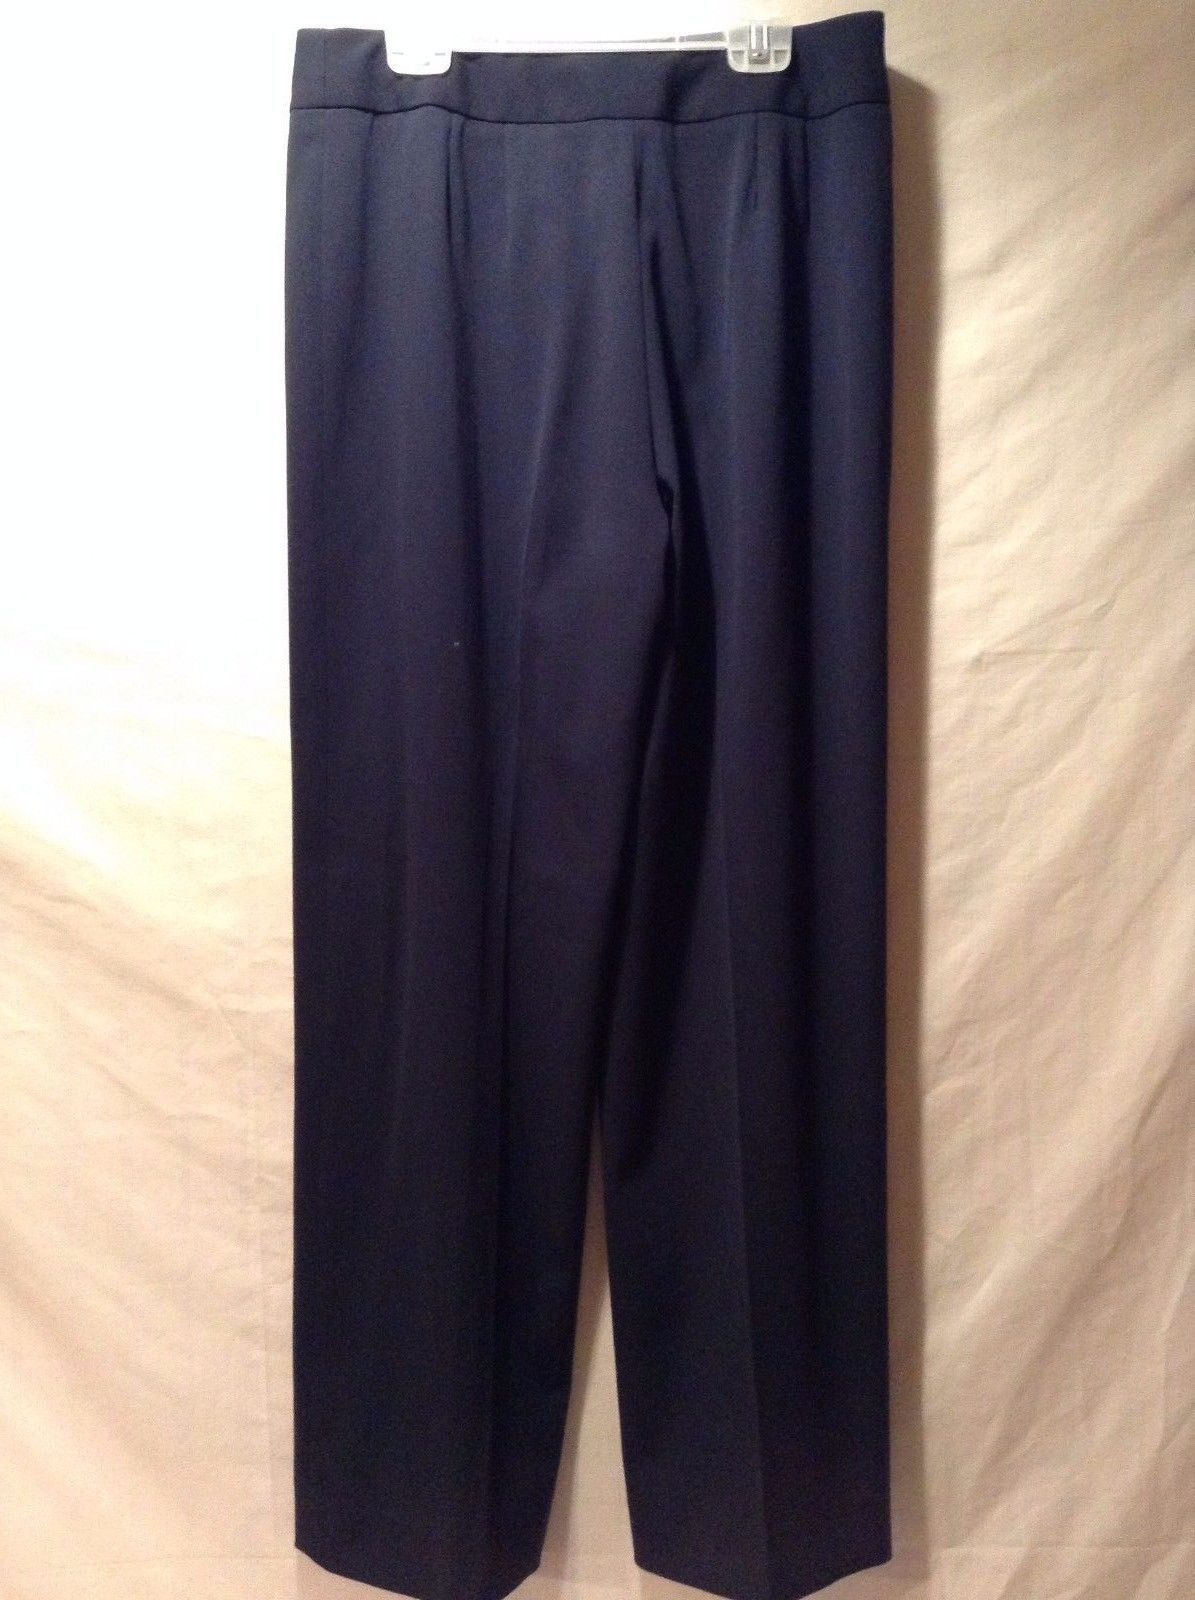 Women's Navy Blue Slacks Pants Straight Cut Valerie Separates Great Condition 4